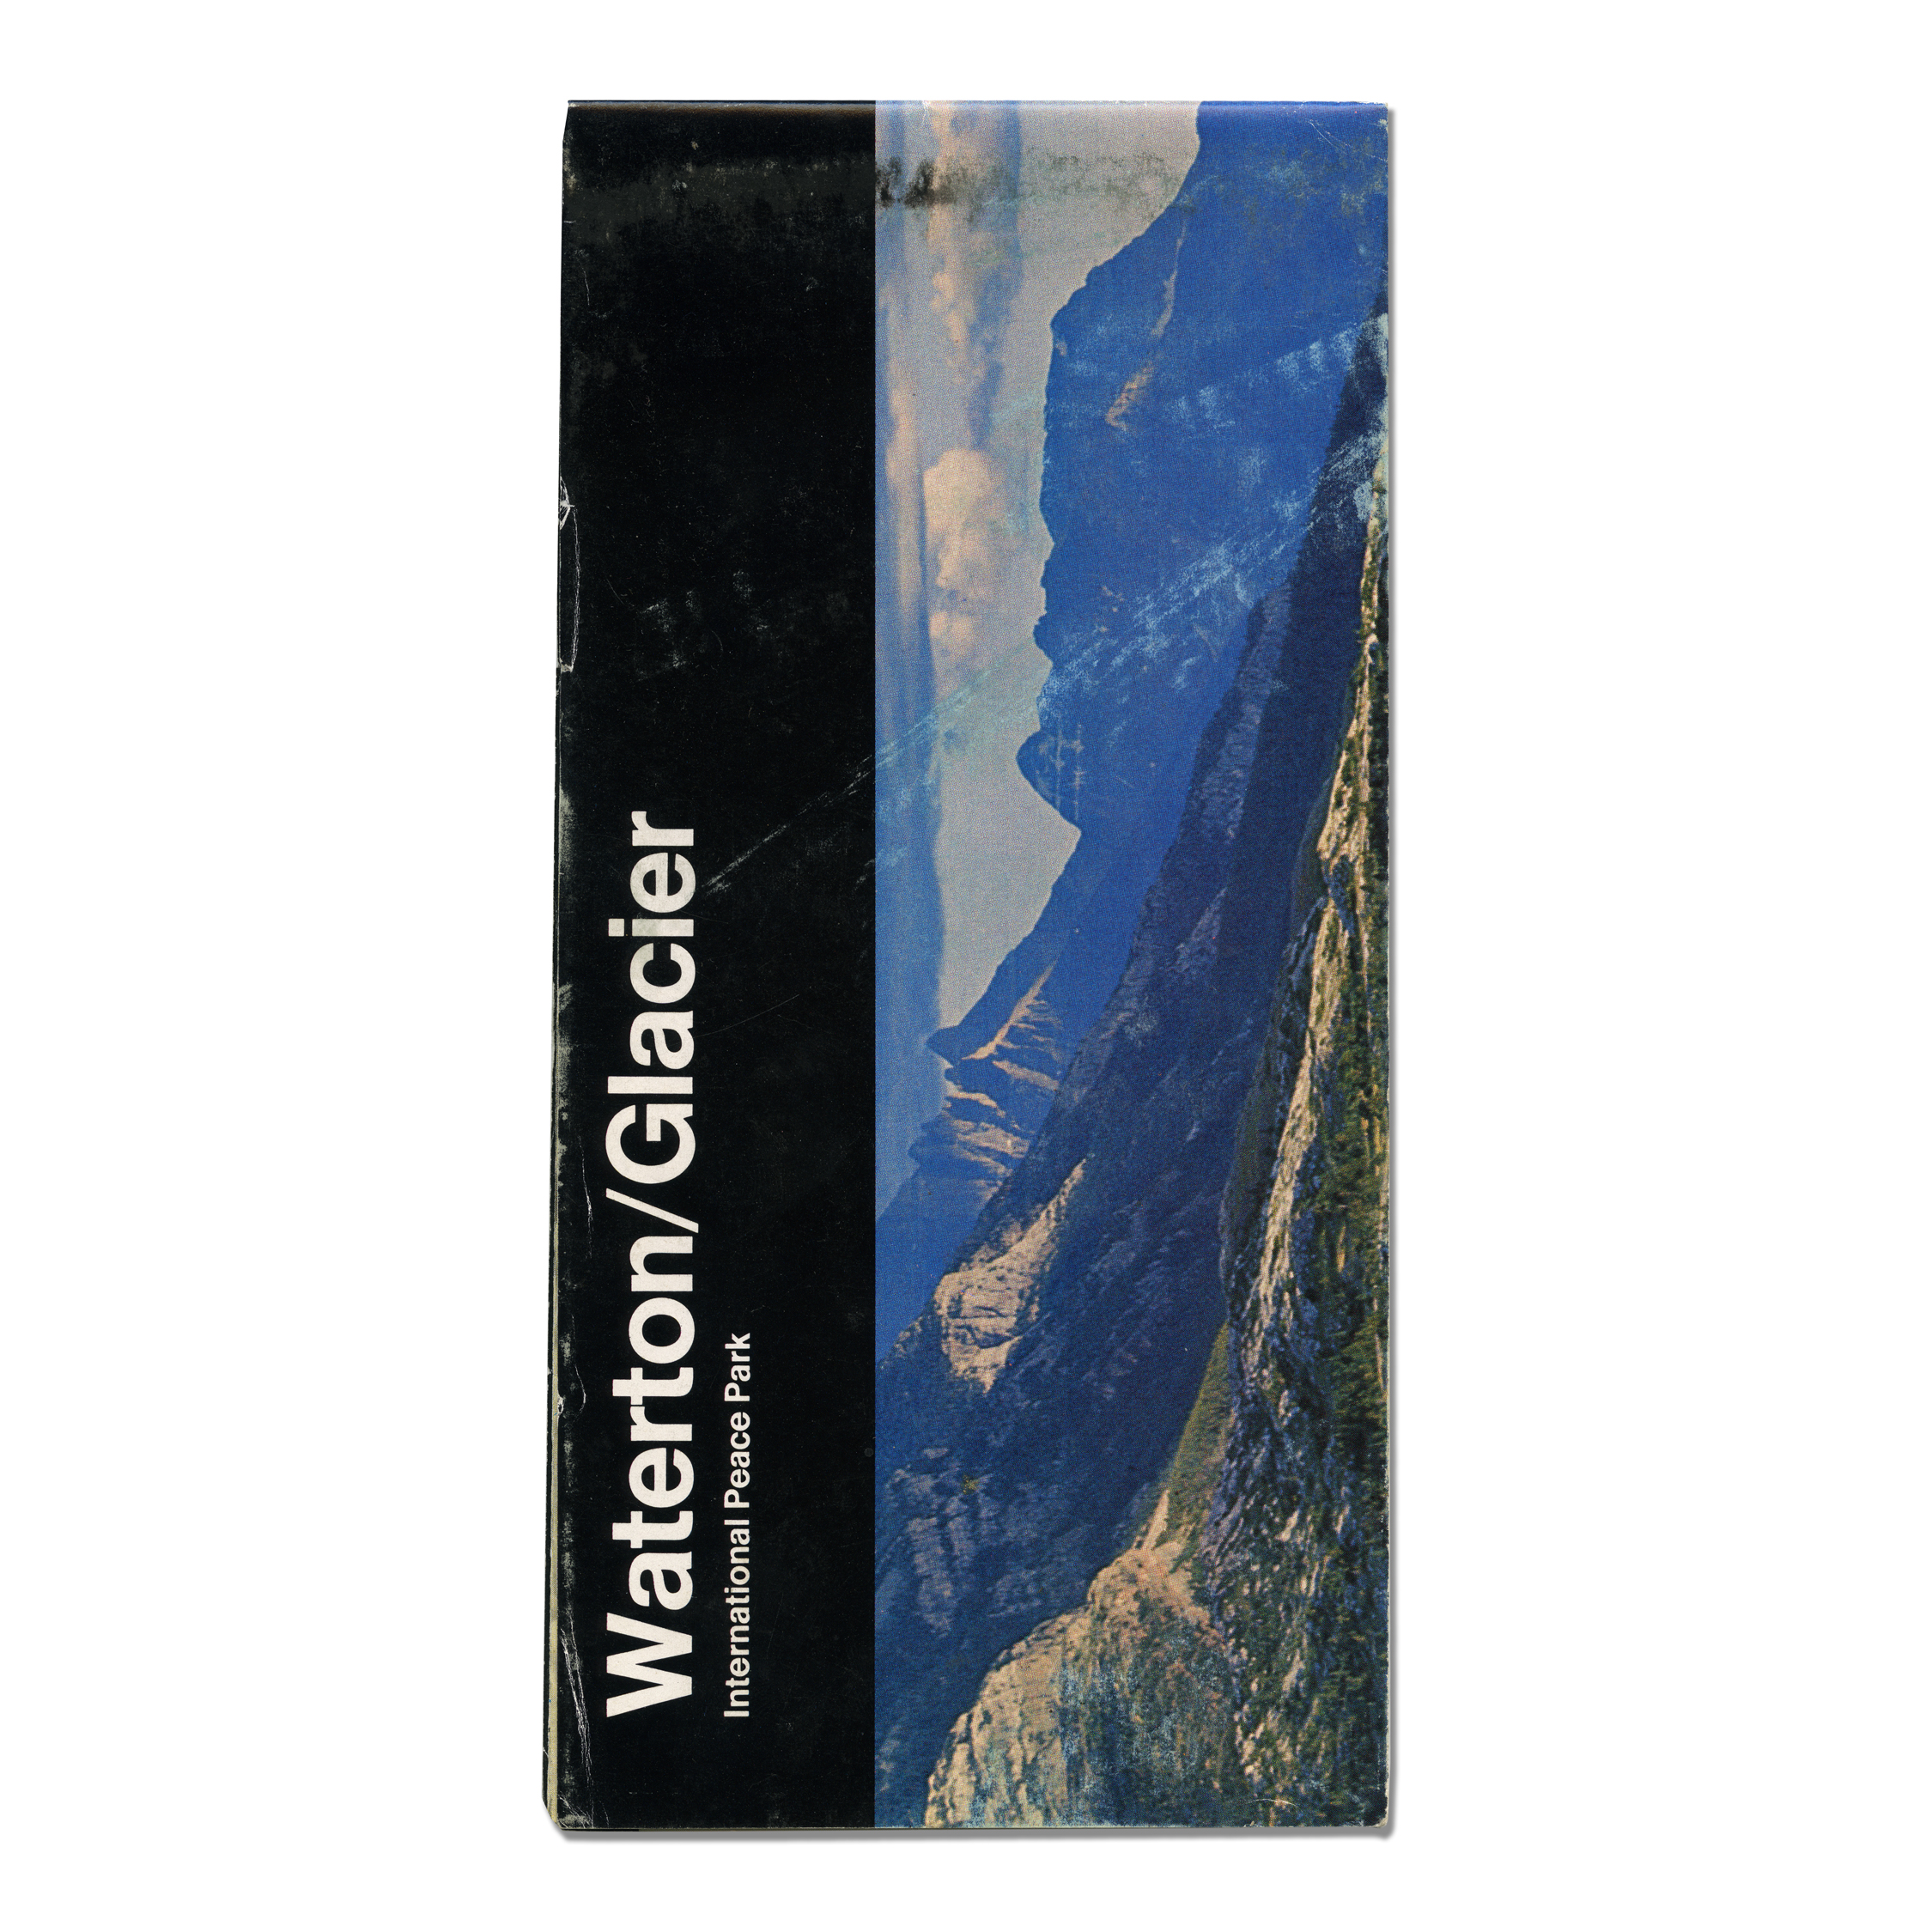 1990_waterton_and_glacier_international_peace_park_brochure.jpg